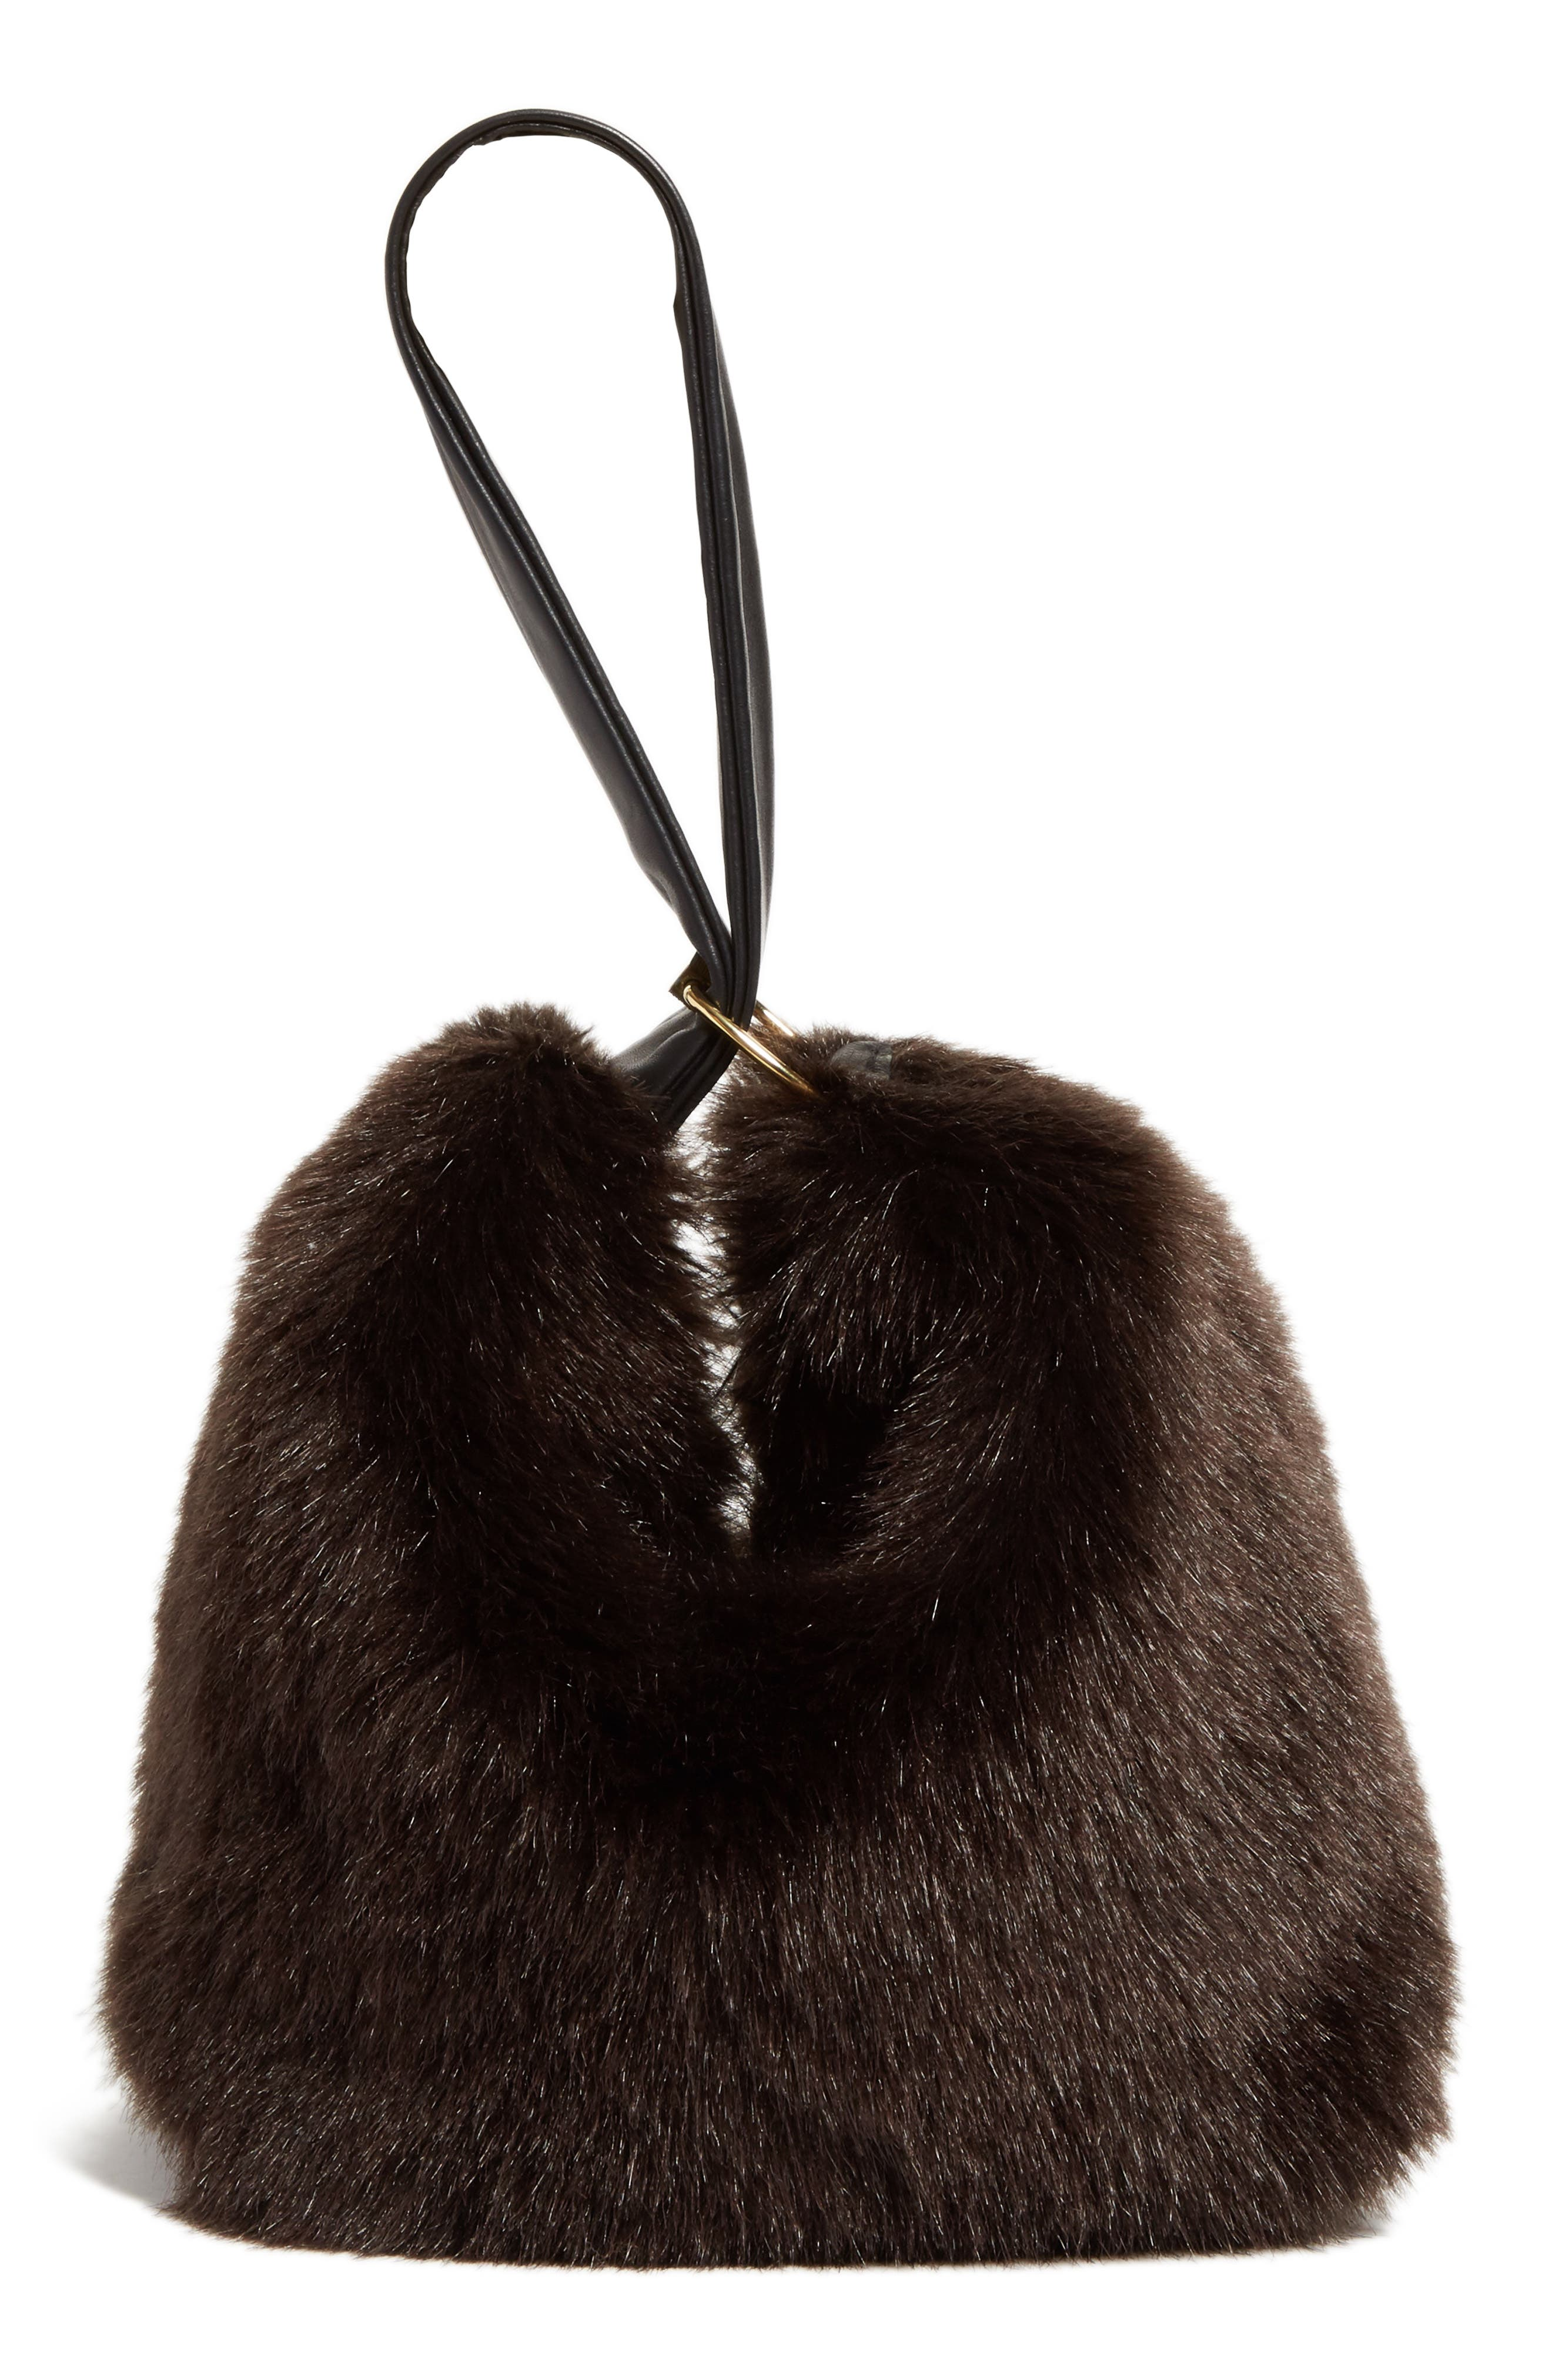 Tissue Pouch Faux Fur Bag,                             Main thumbnail 1, color,                             200